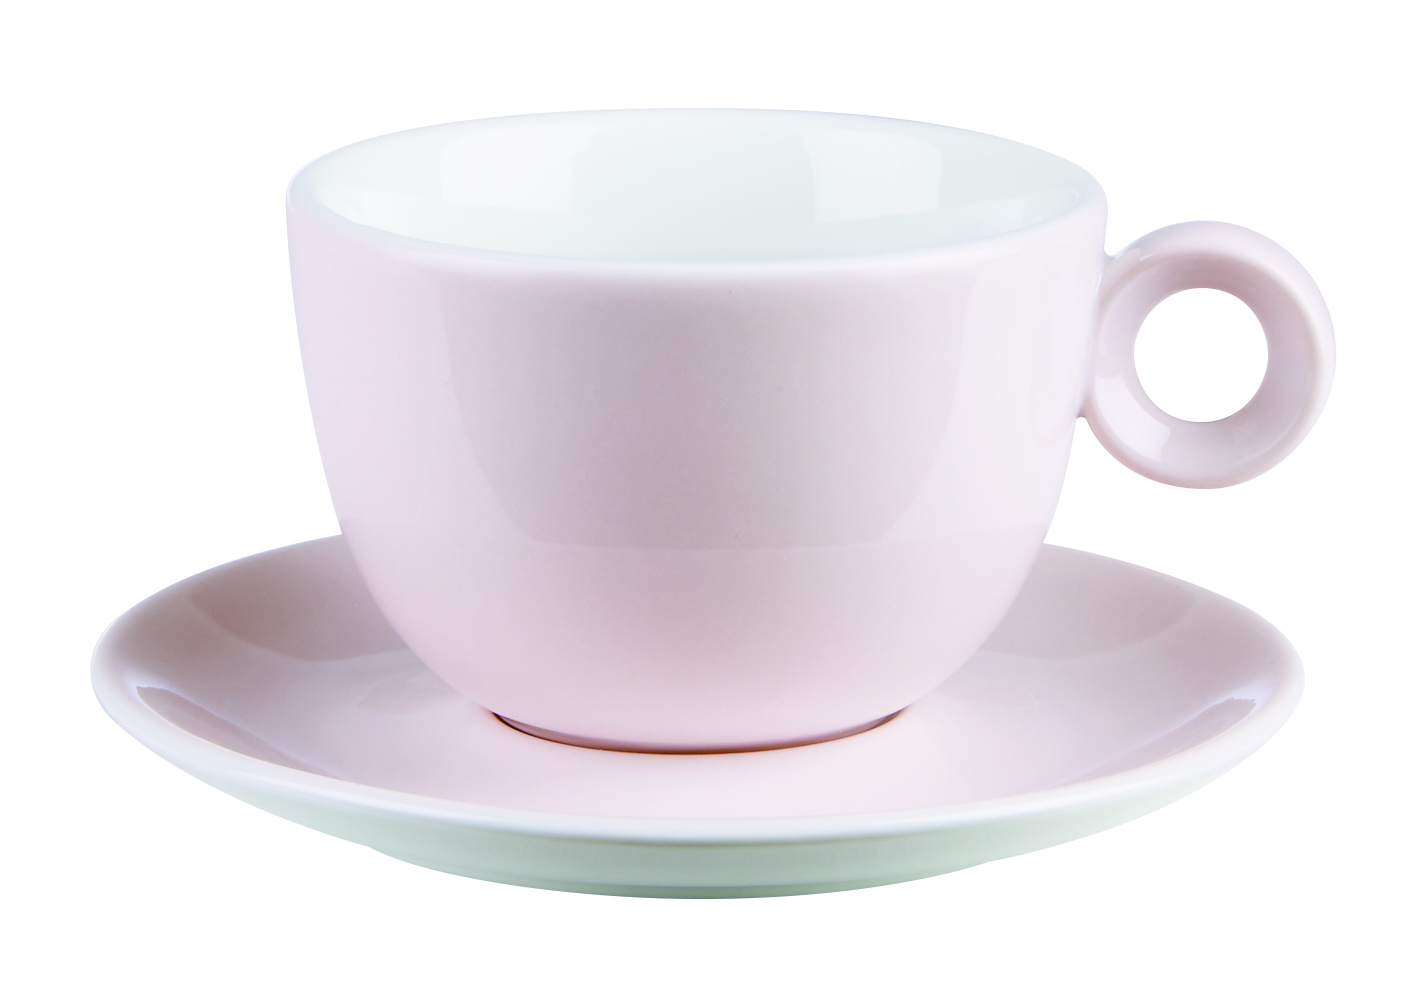 Bowl Shaped Cups & Saucers